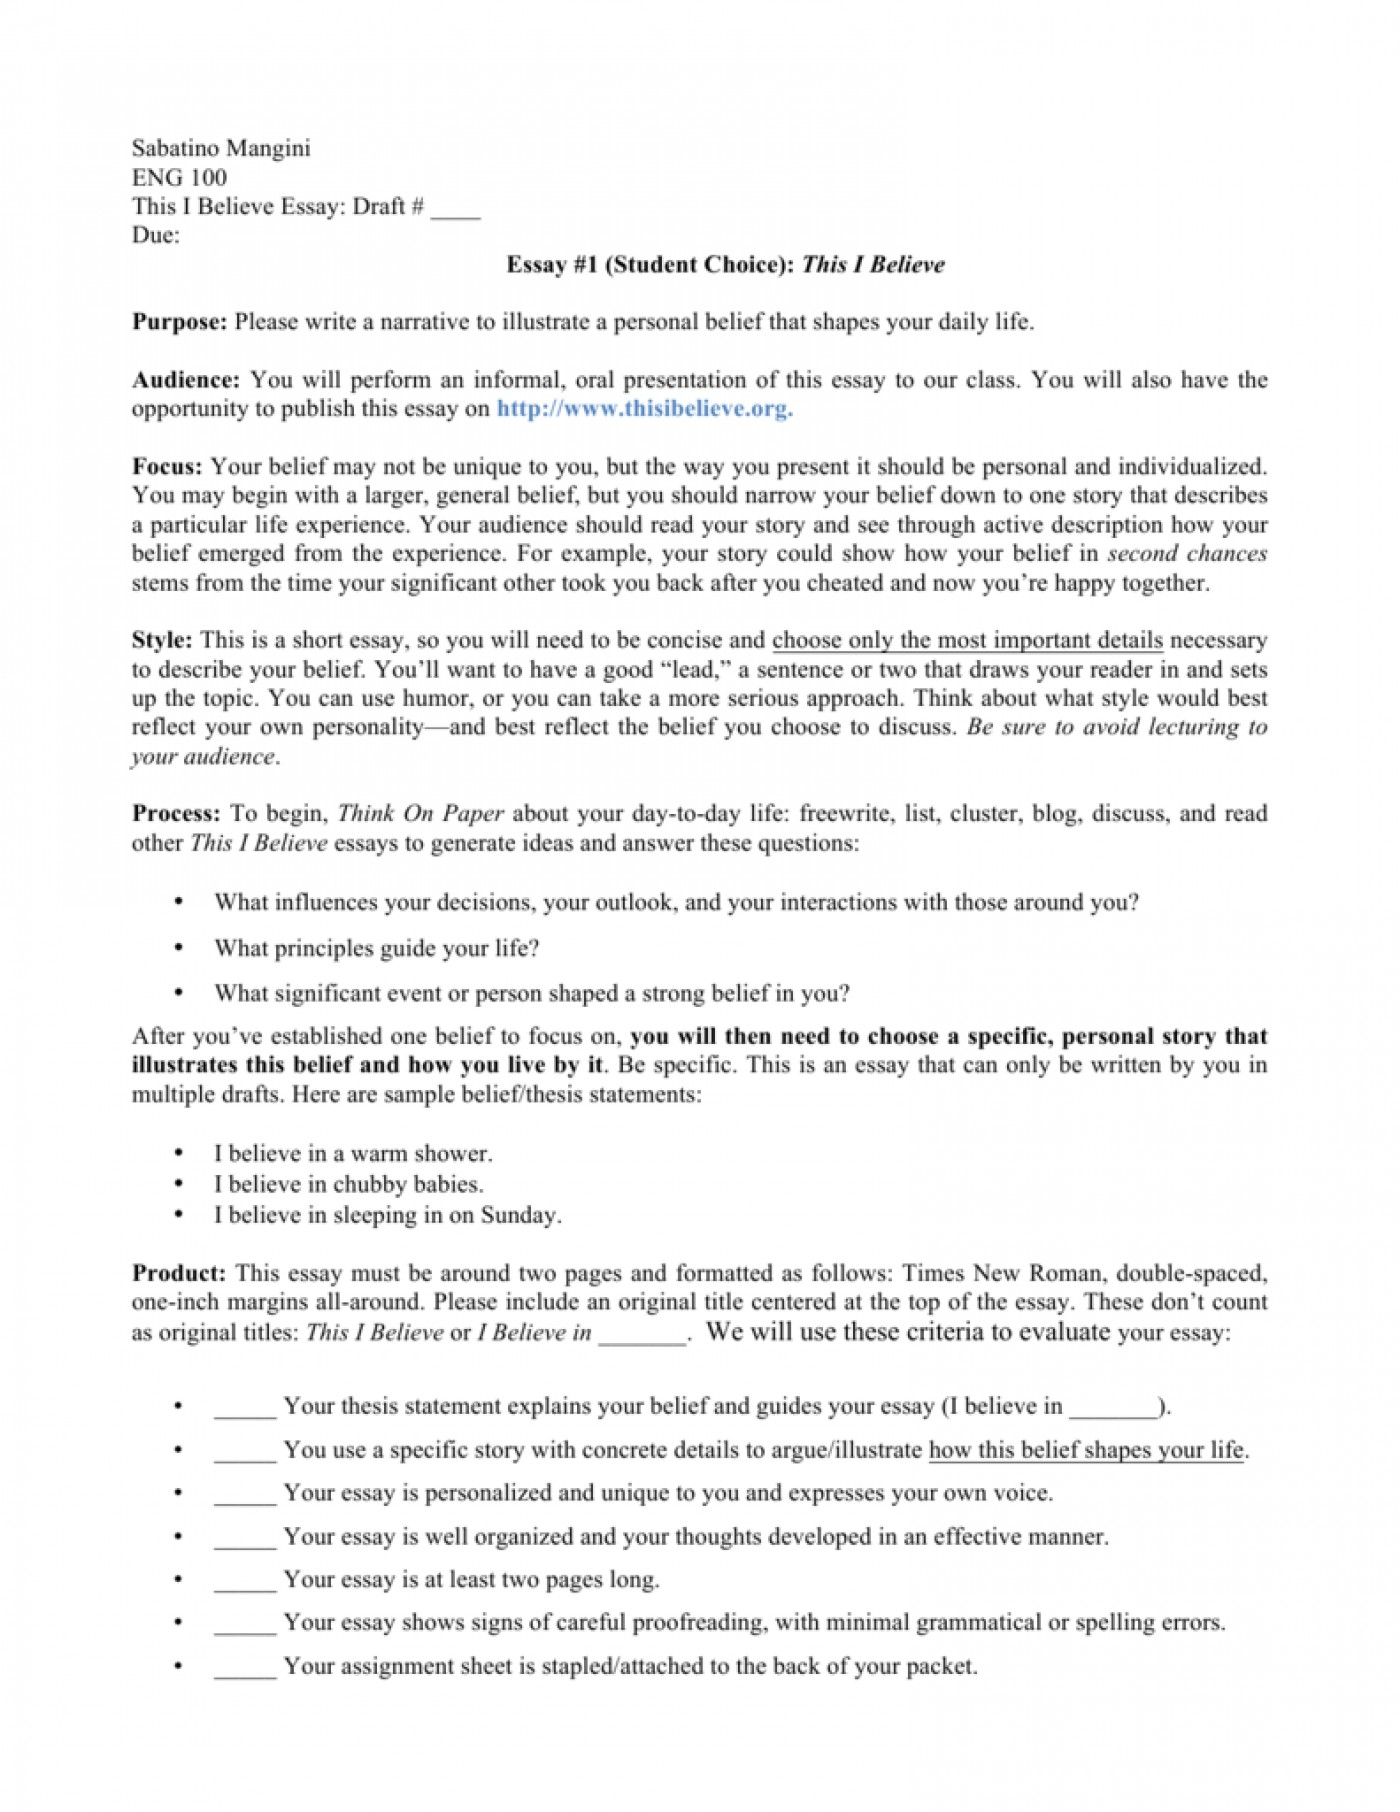 001 This I Believe Essay Example 008807227 1 Singular Rubric Essays Npr Format 1400